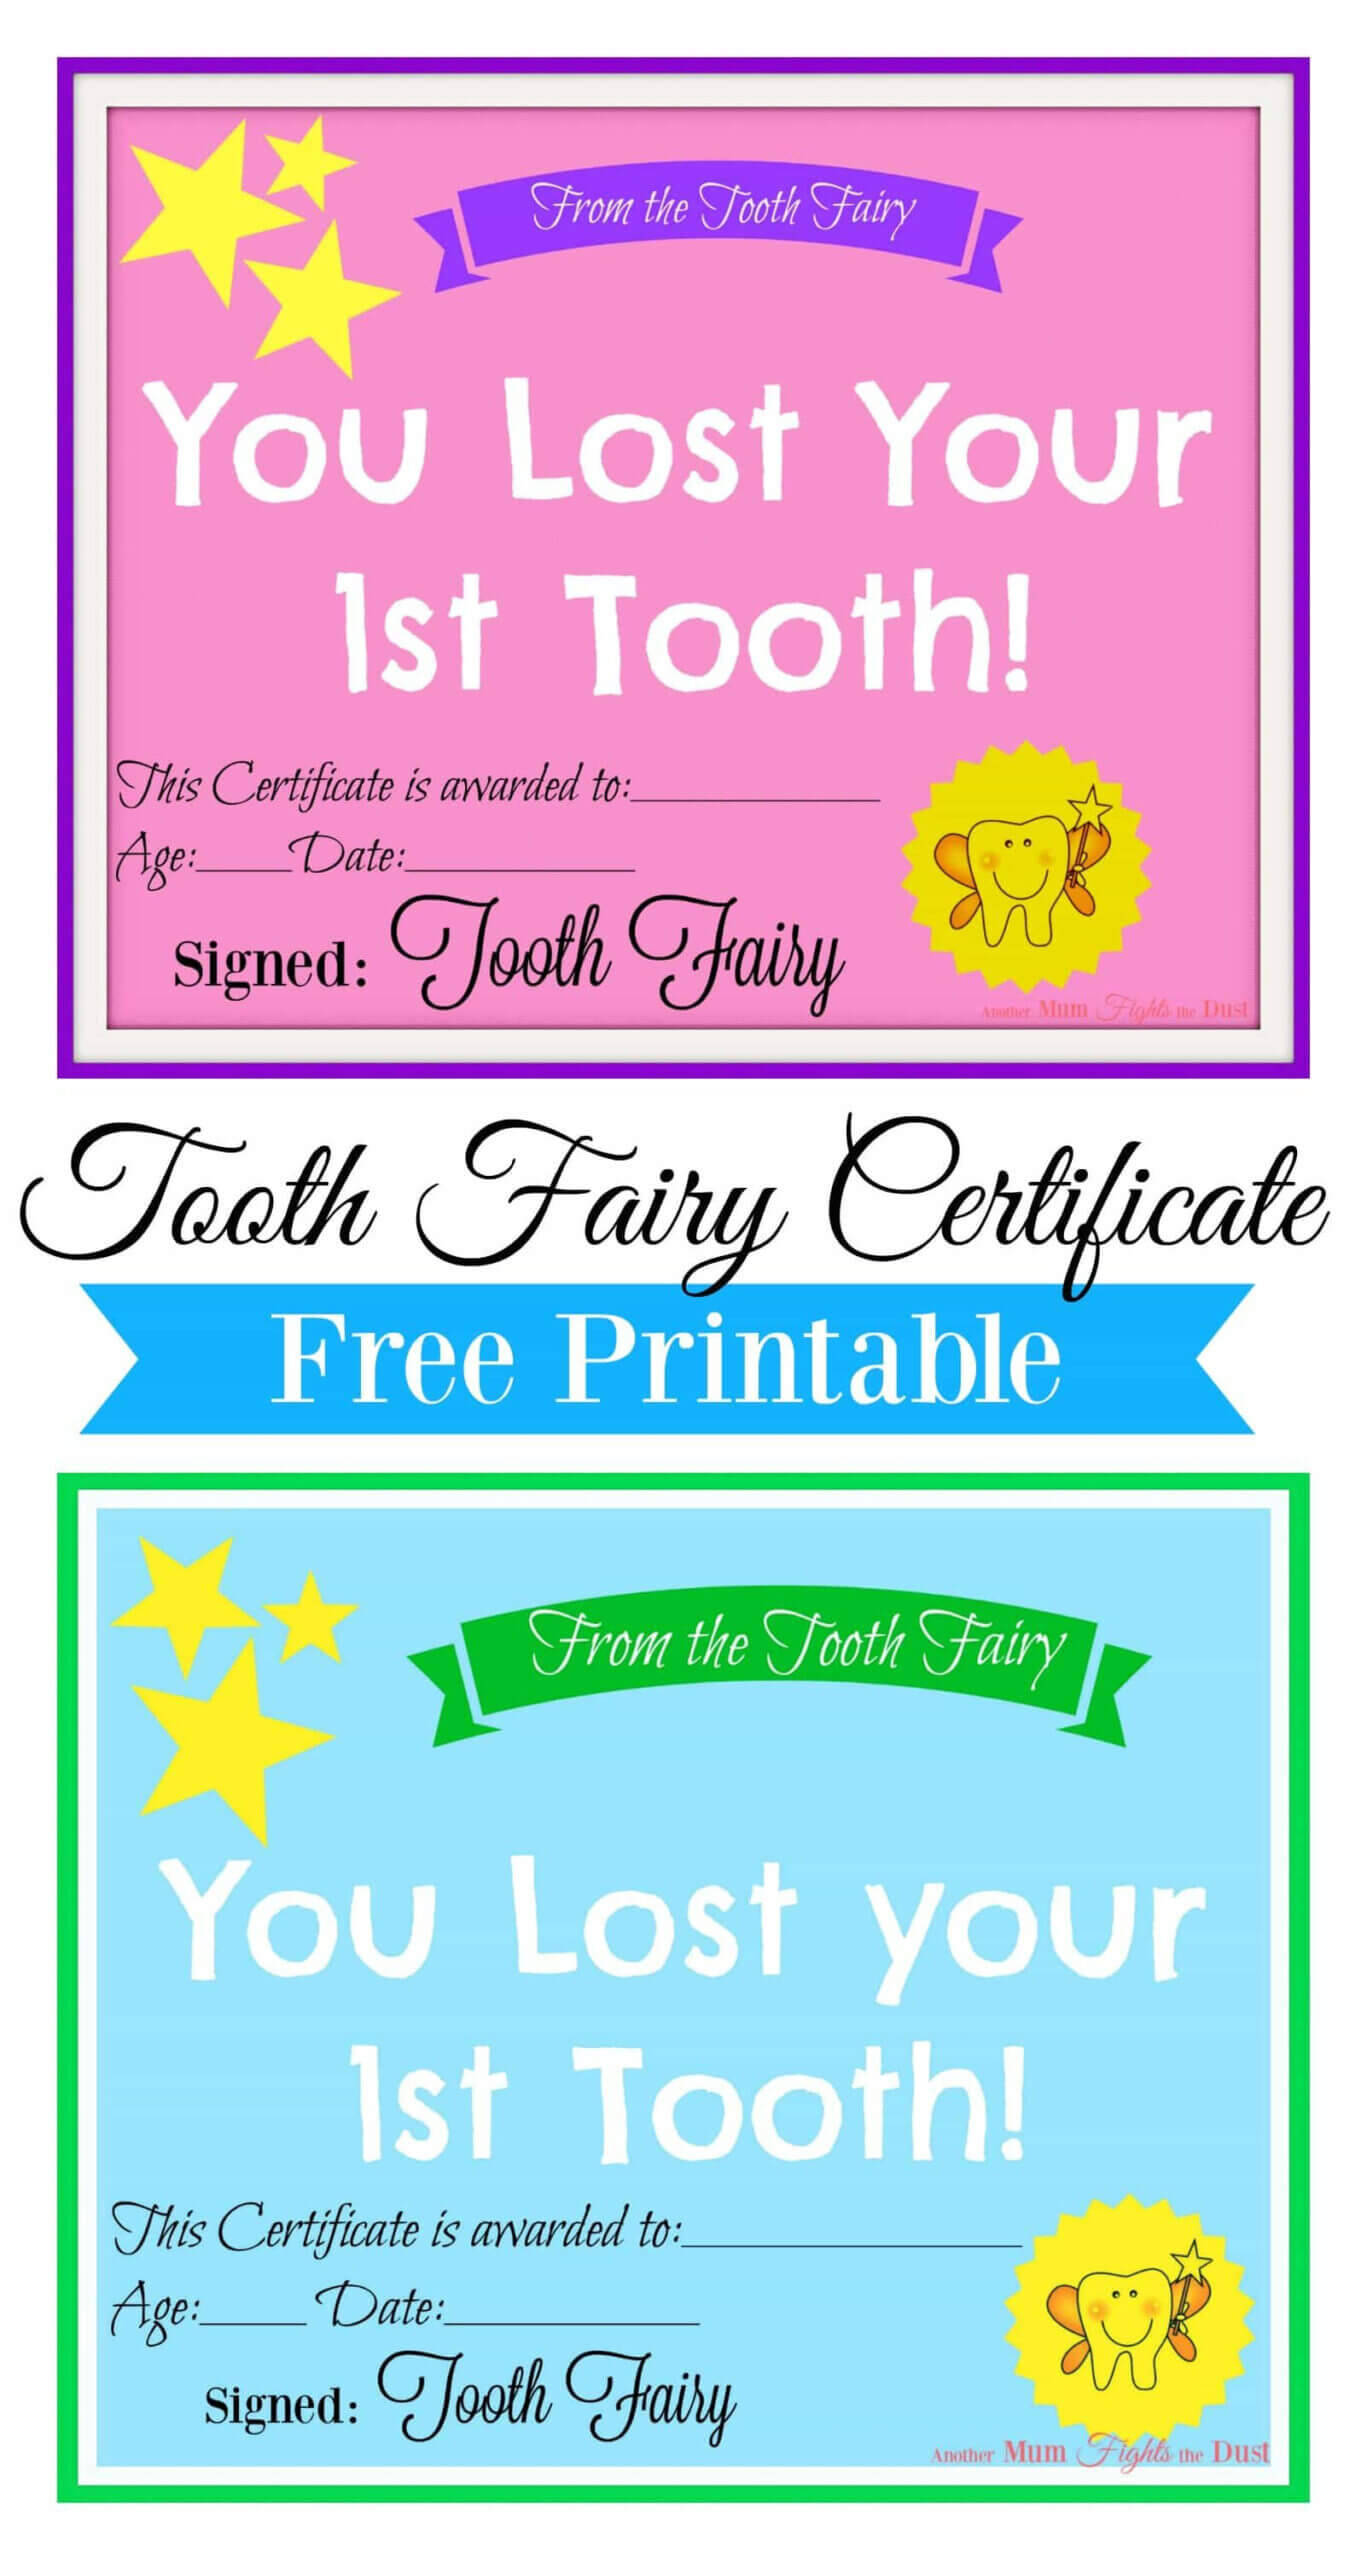 Free Printable Tooth Fairy Certificate | Tooth Fairy Pertaining To Free Tooth Fairy Certificate Template